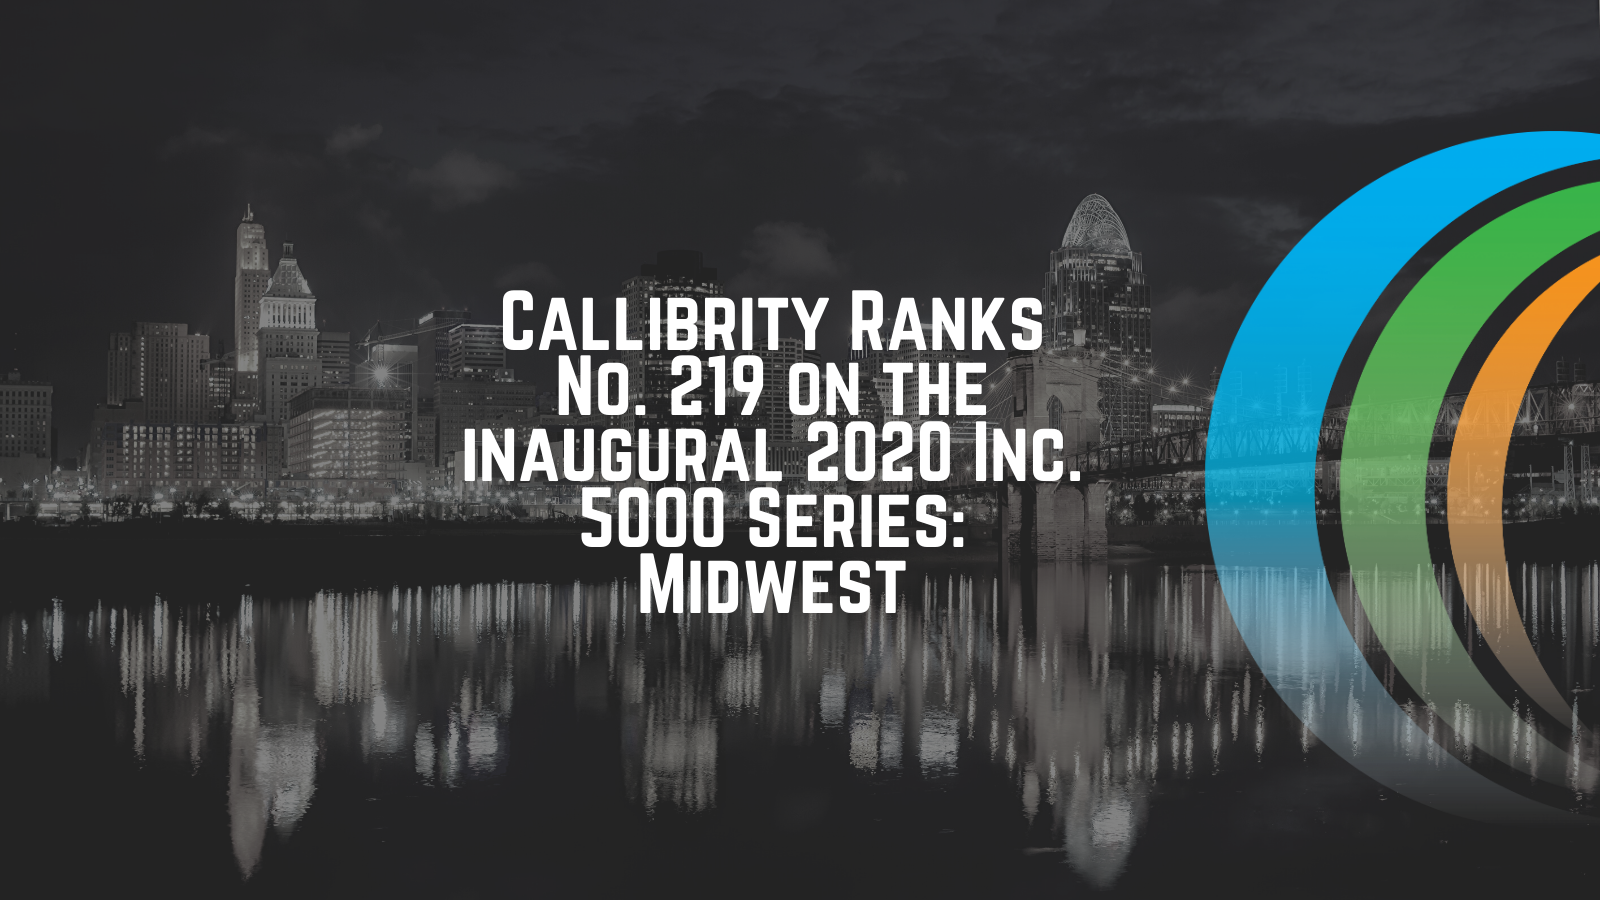 Callibrity Ranks No. 219 on the inaugural 2020 Inc. 5000 Series: Midwest